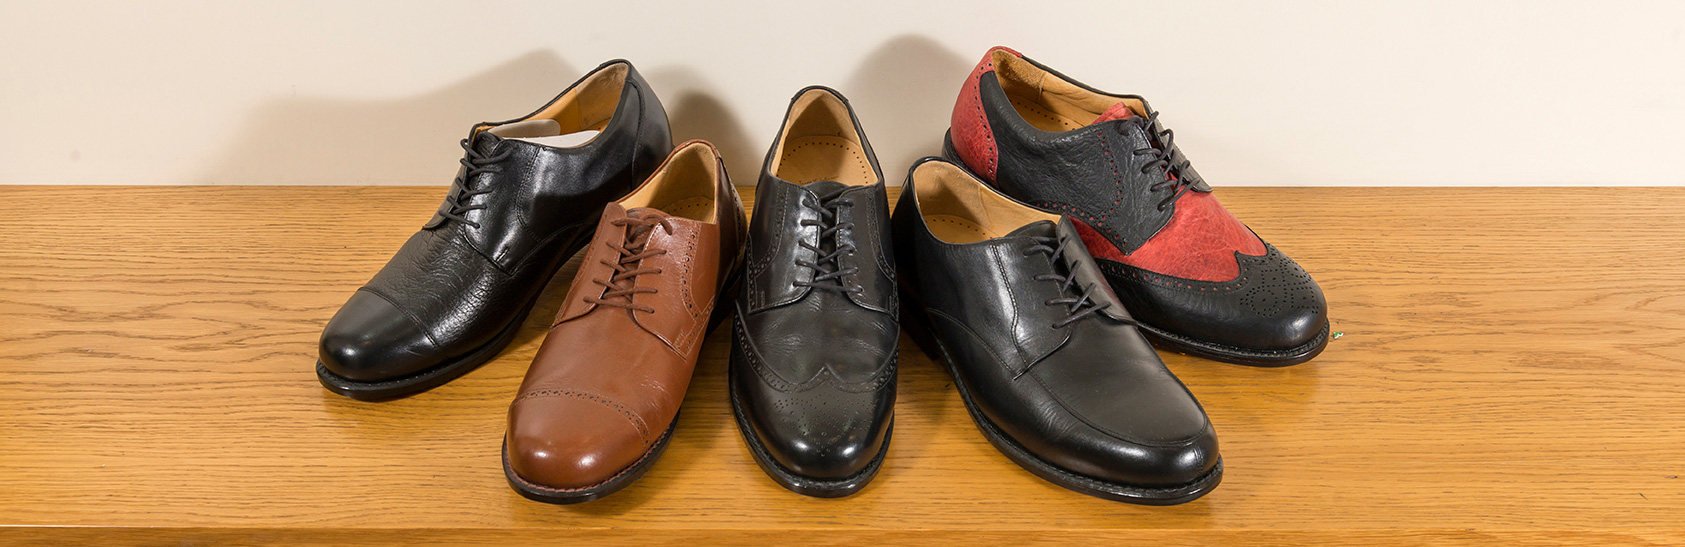 Men's Shoes at Foot Solutions